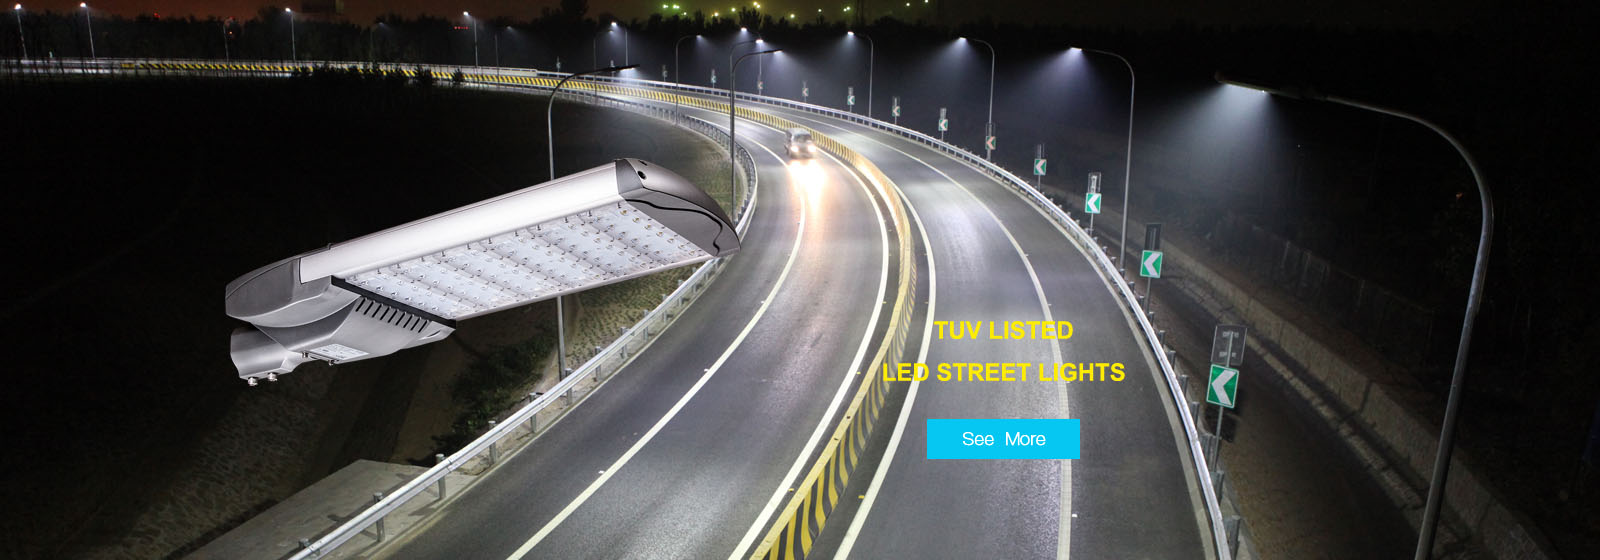 TUV Listed LED Street Lights